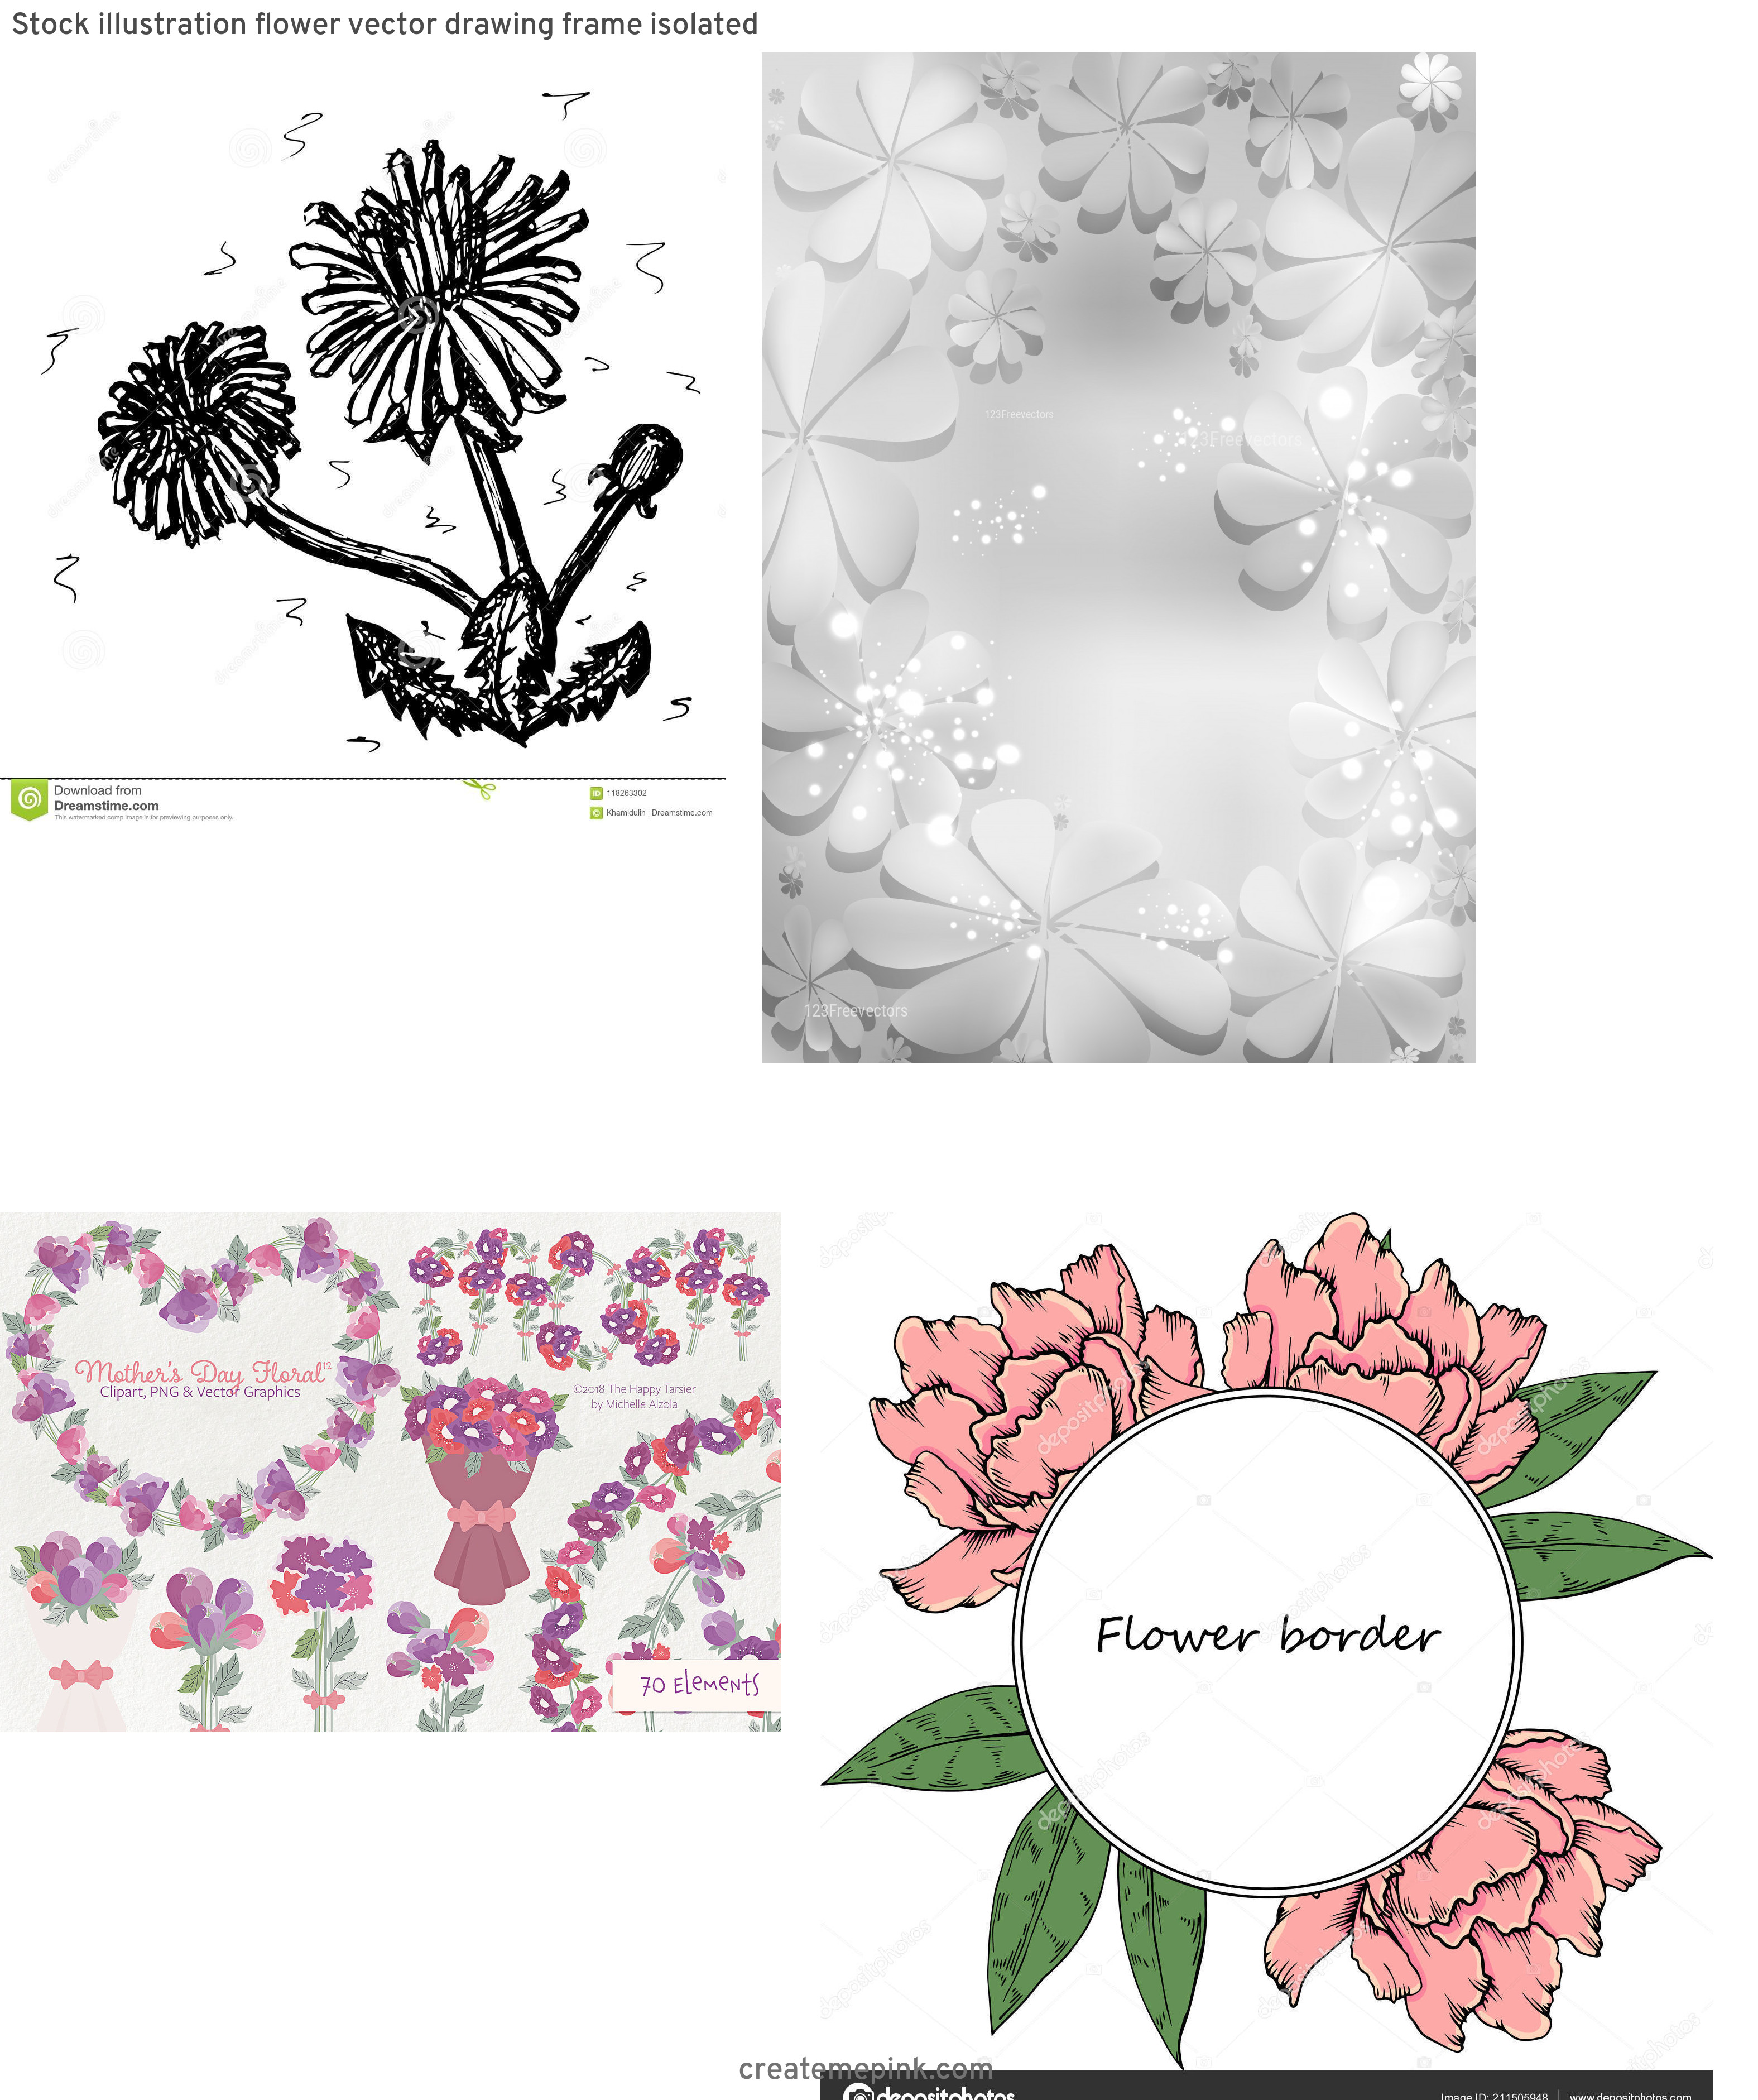 Vector Graphics Floral: Stock Illustration Flower Vector Drawing Frame Isolated